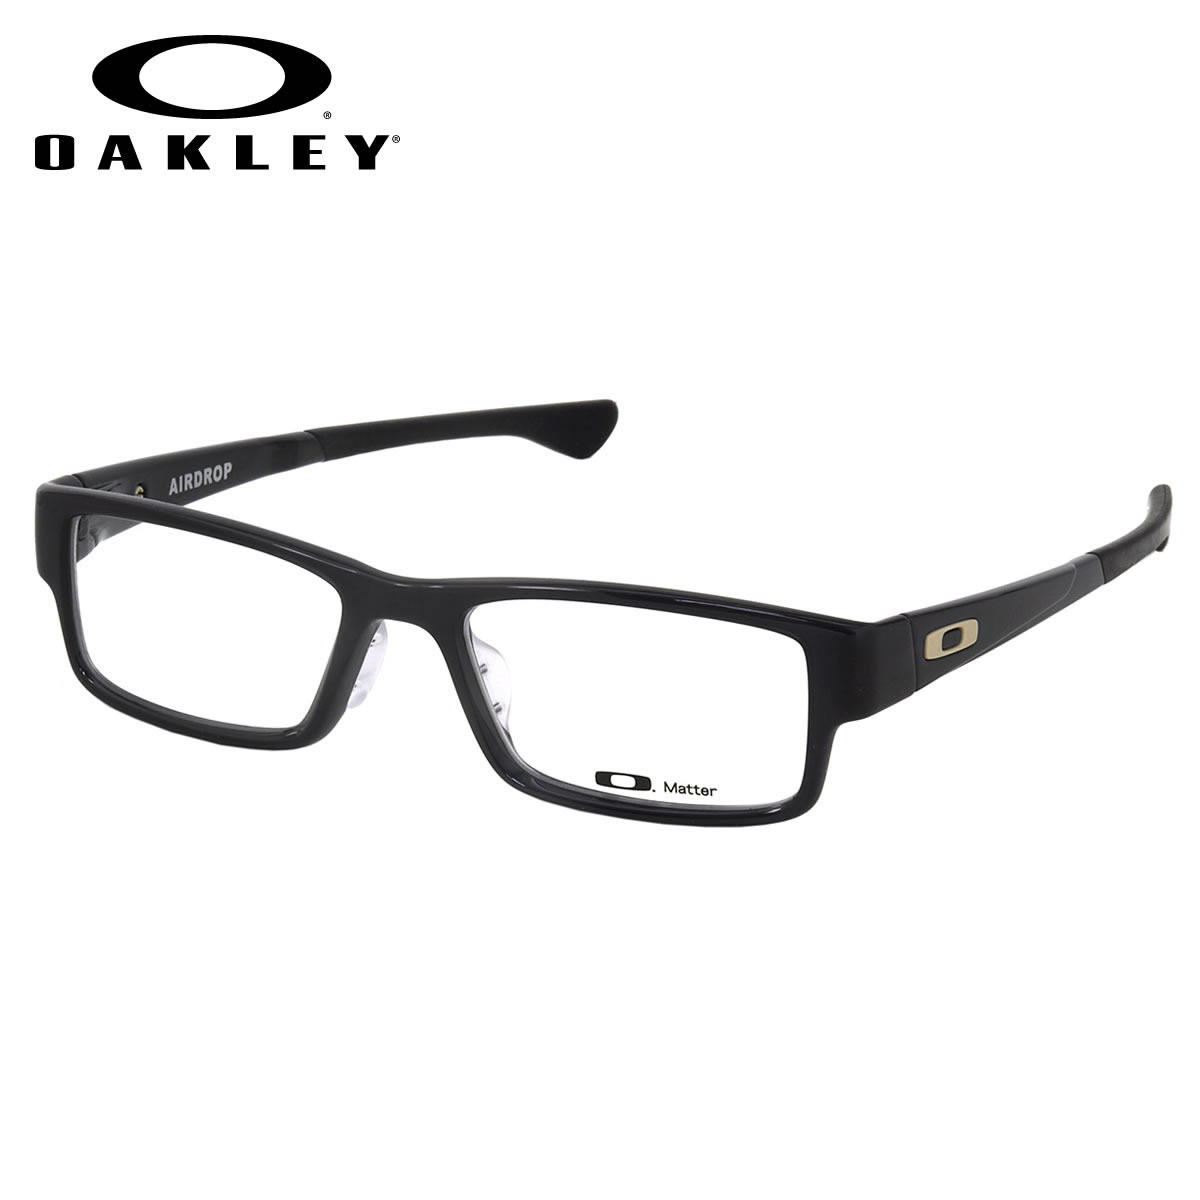 Oakley sunglasses asian fit - Oakley Glasses Ox8065 0155 Airdrop Asia Fit Black Ink Red Asian Fit Square Oakley